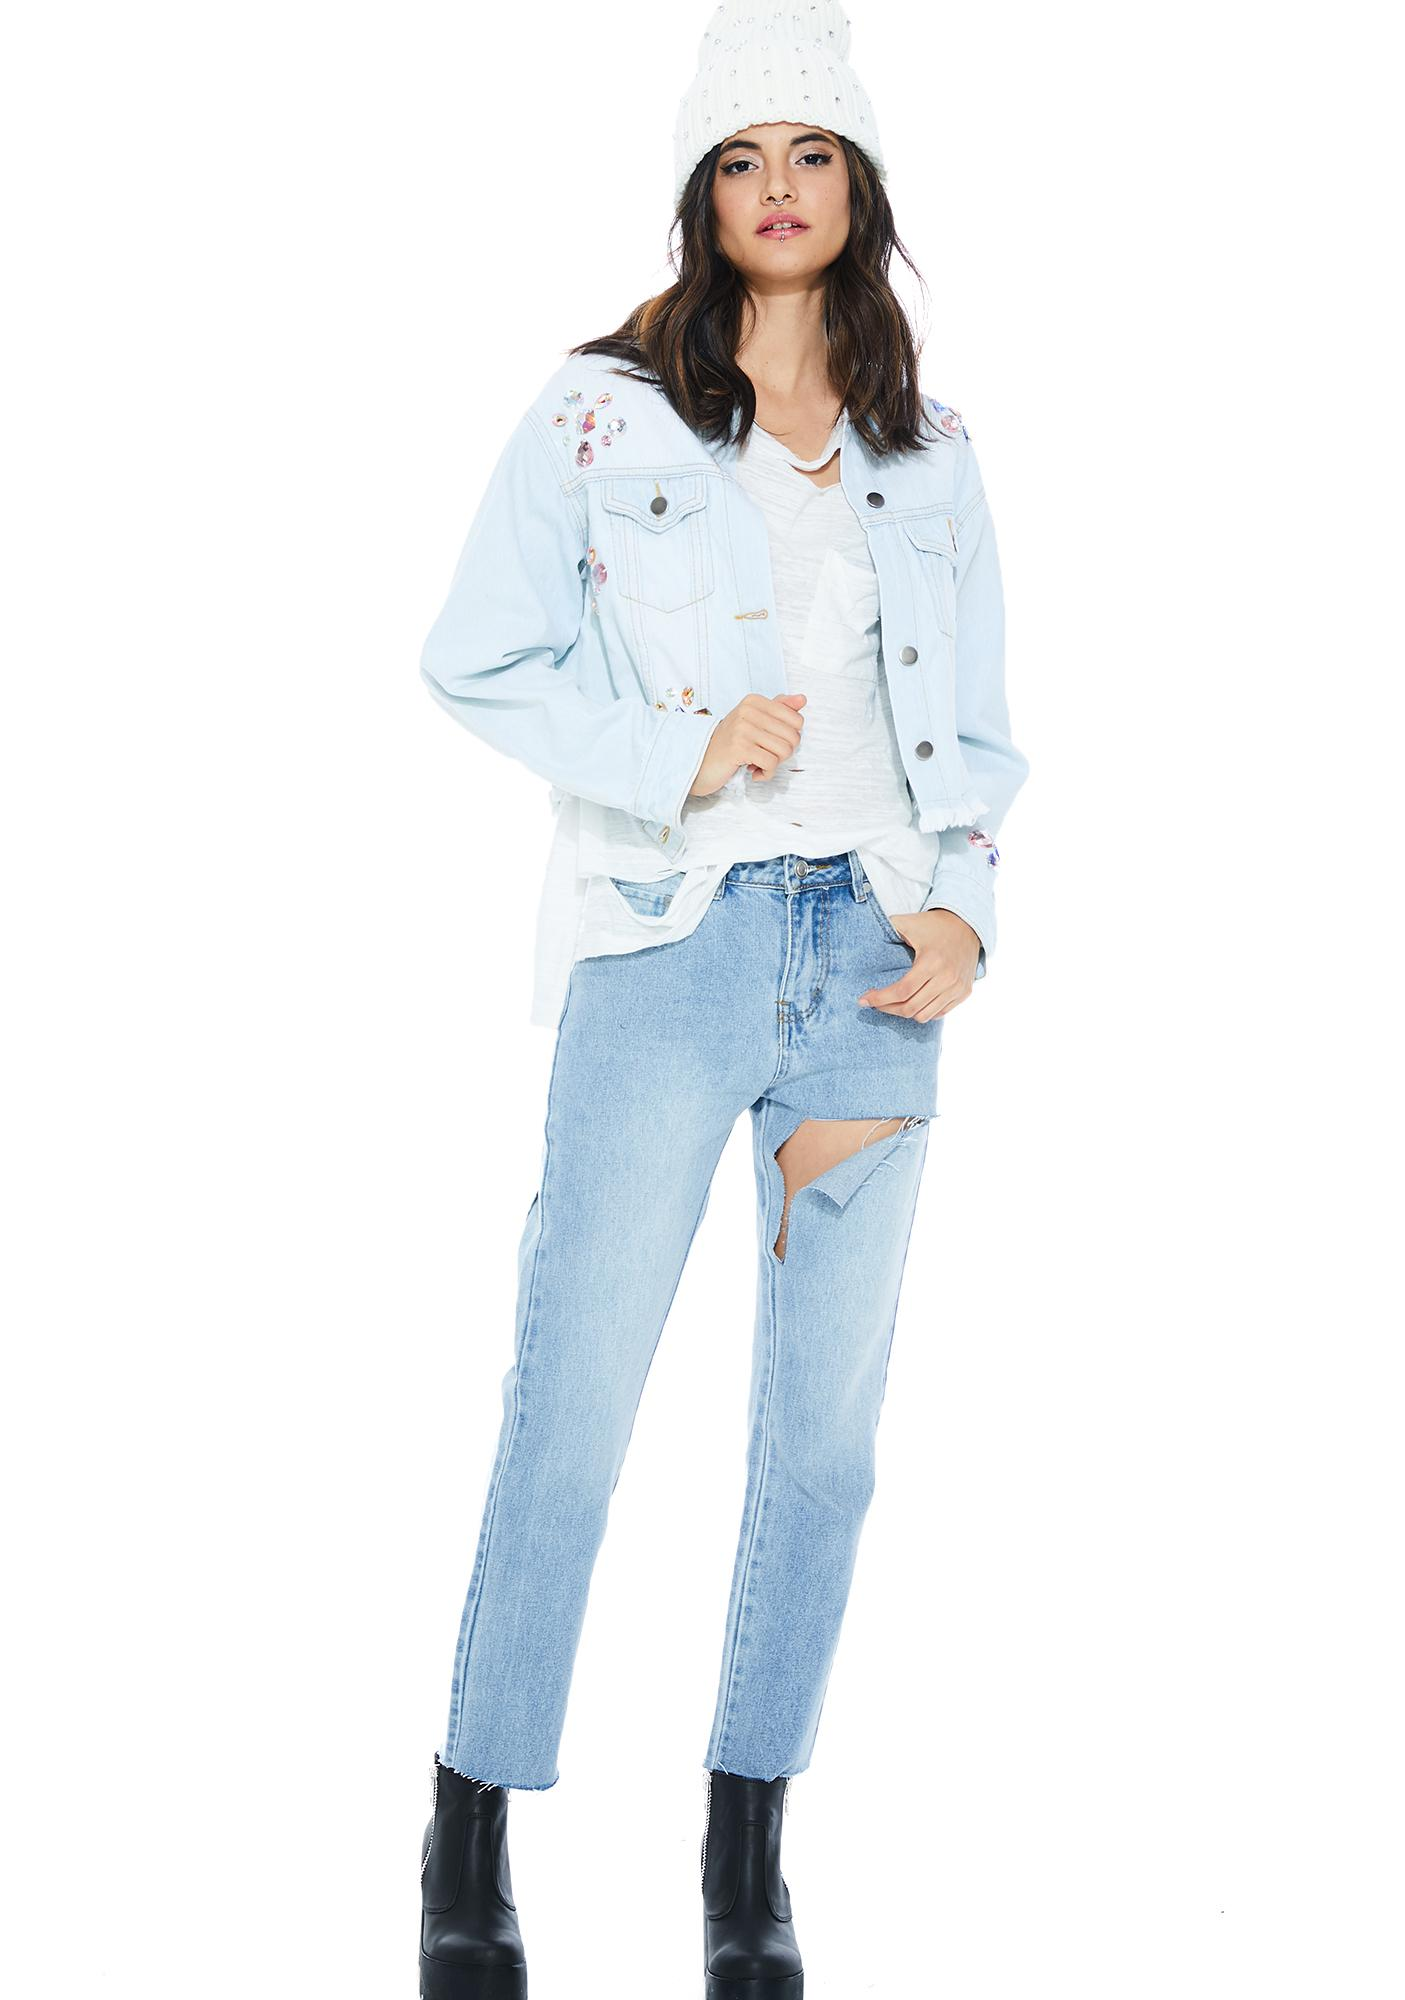 Precious Gemz Denim Jacket